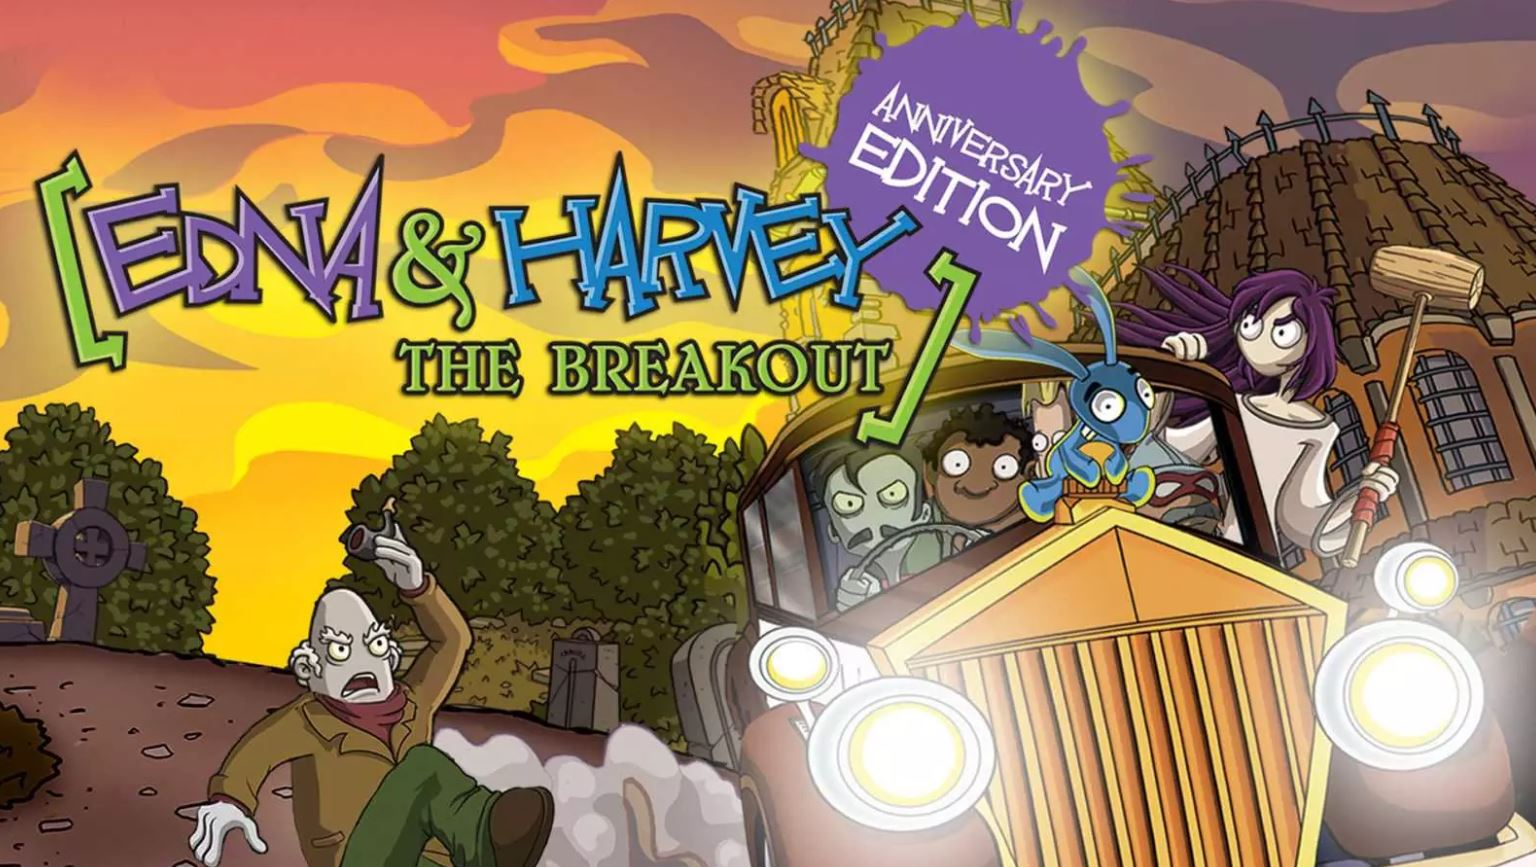 Edna and Harvey: The Breakout recensione - Anniversary Edition thumbnail